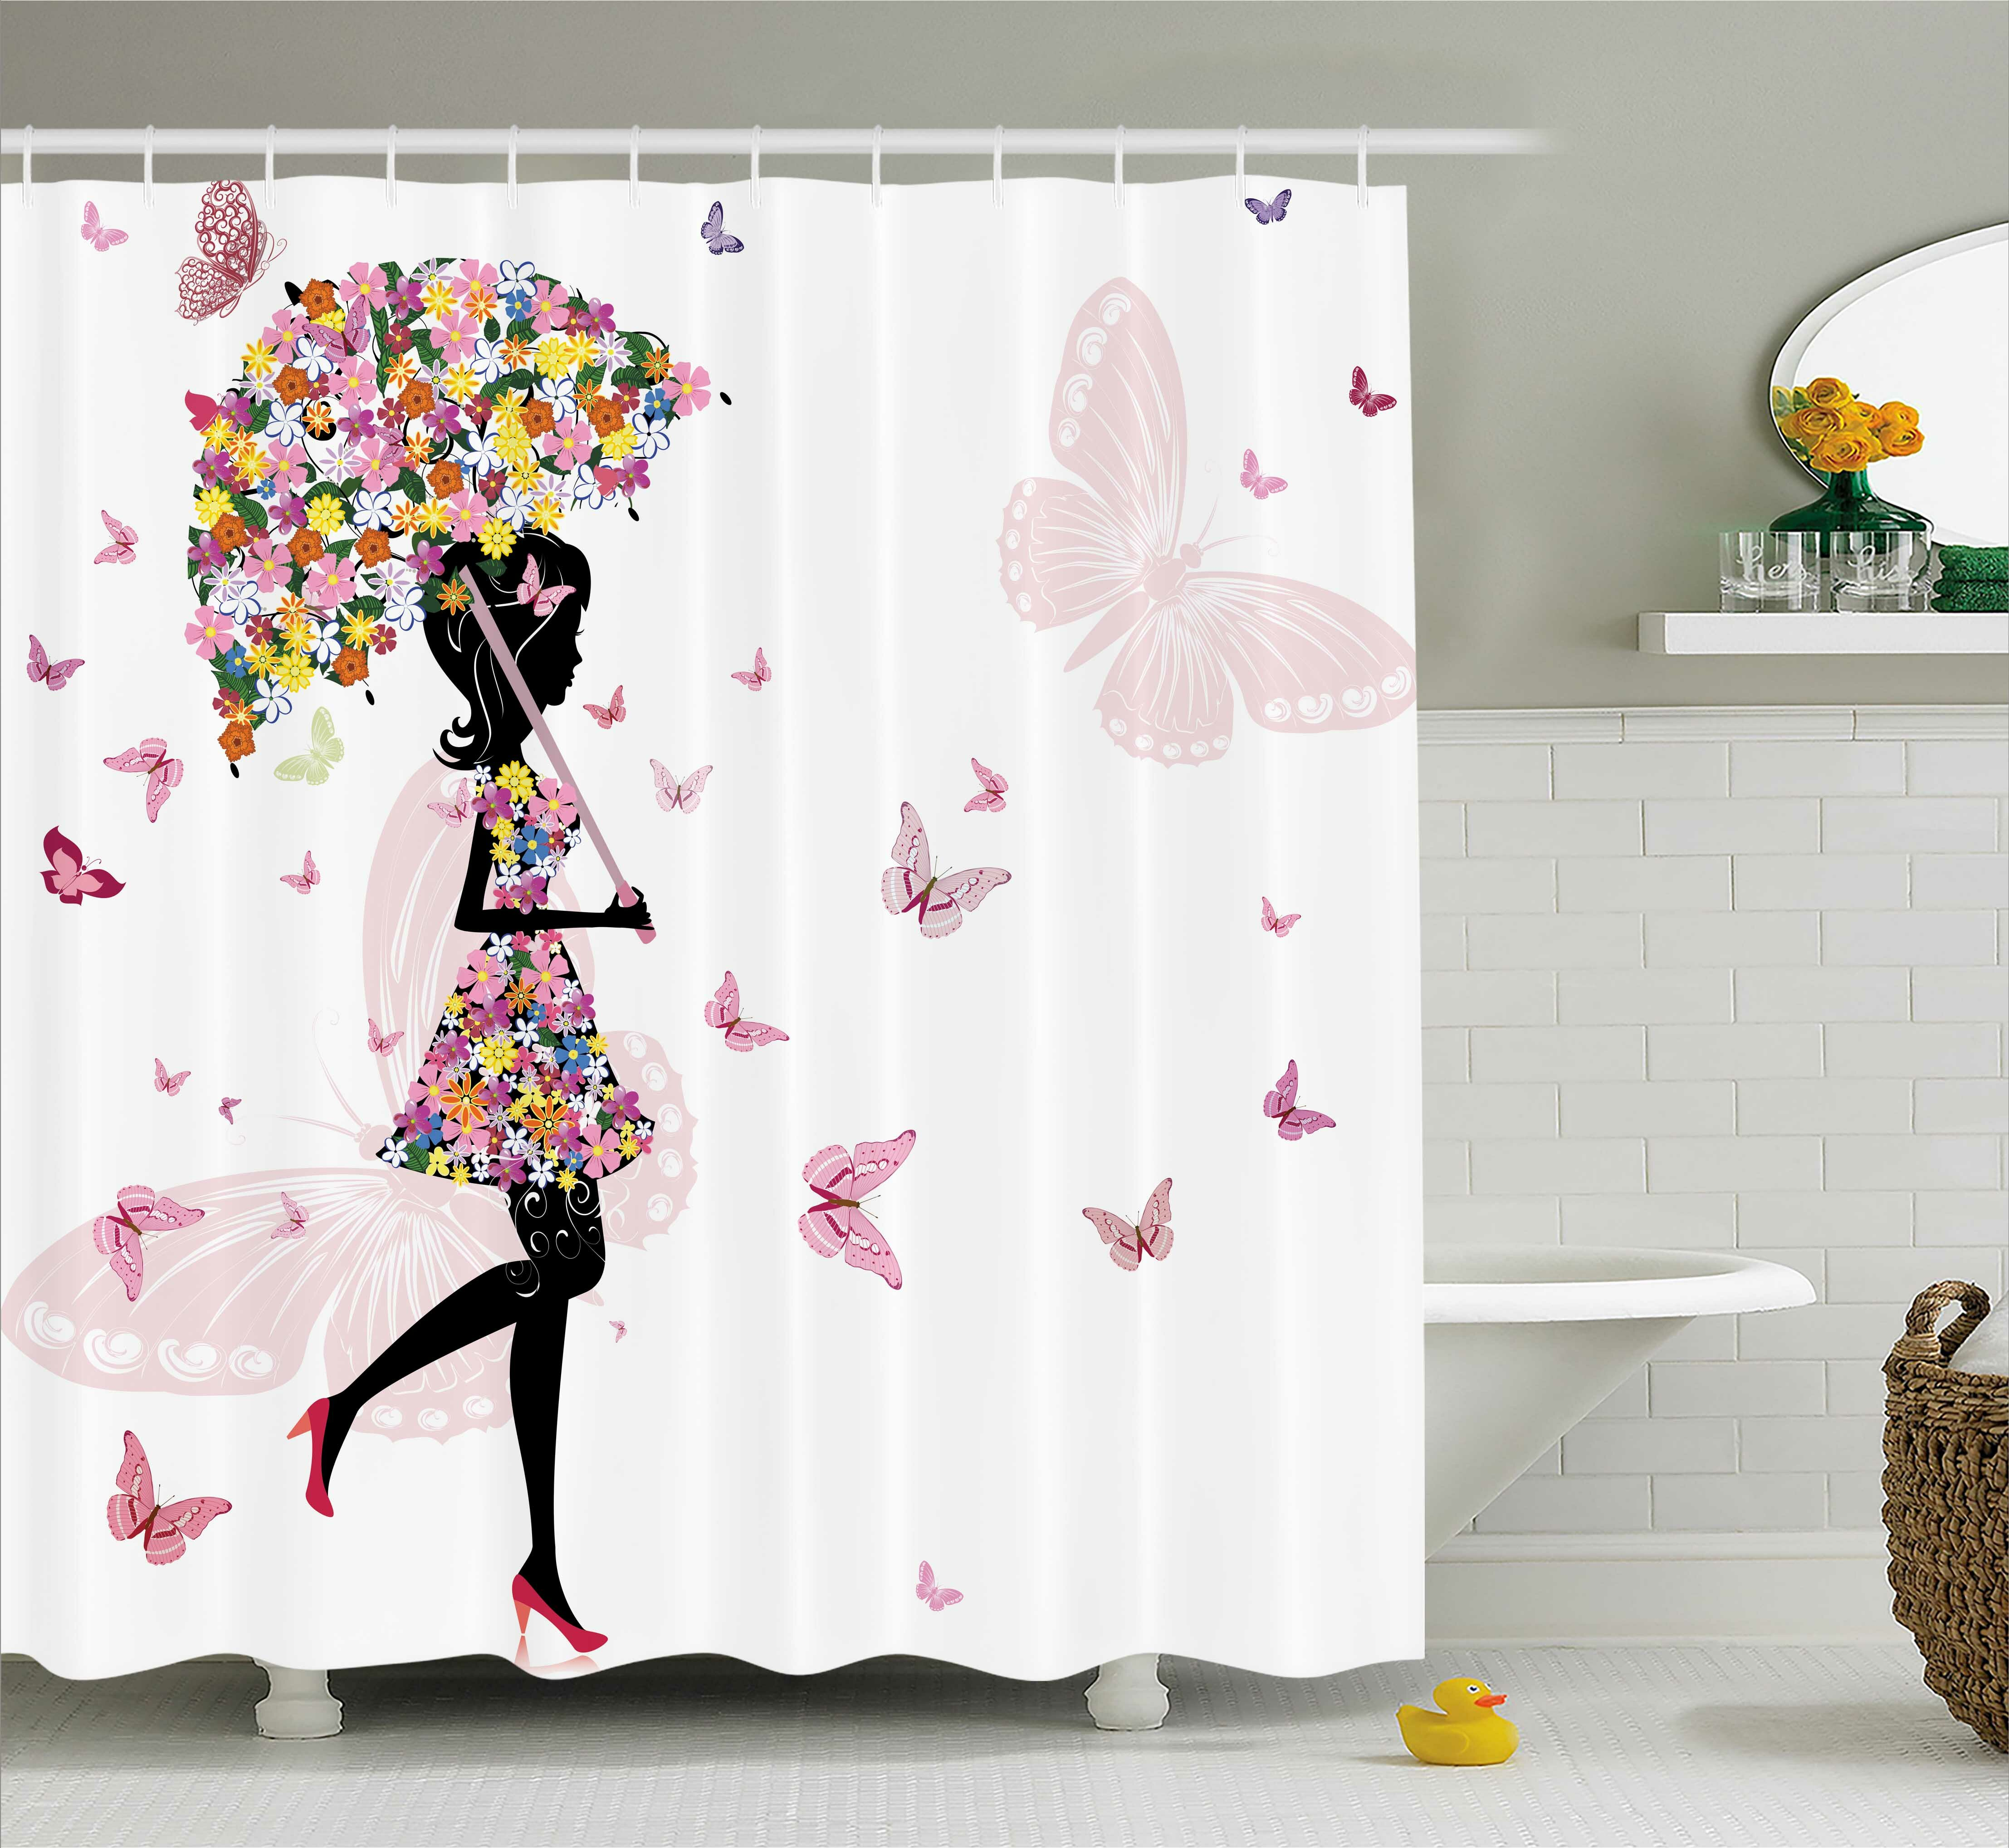 Ebern Designs Pauline Girl With Floral Umbrella And Dress Walking Butterflies Artsy Print Shower Curtain Reviews